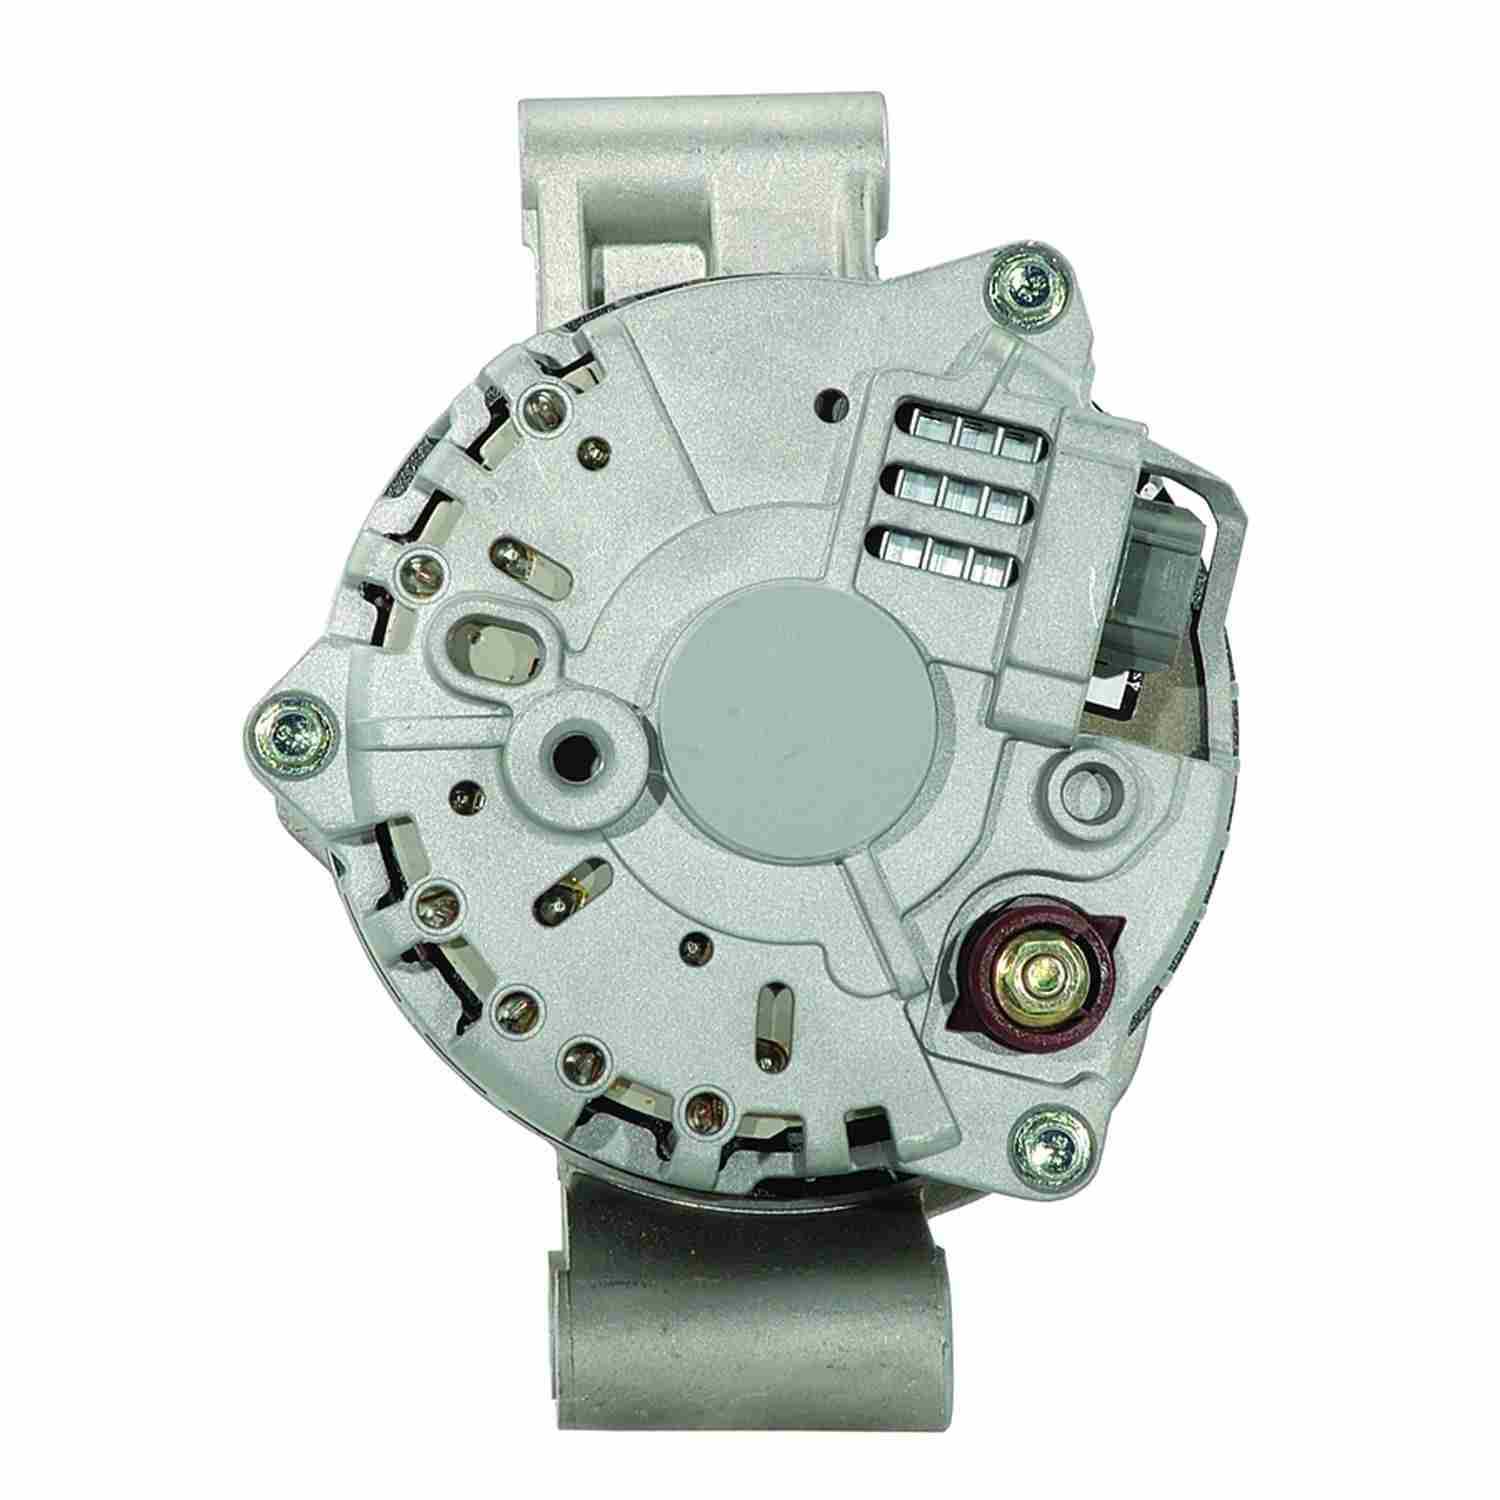 ACDELCO PROFESSIONAL - Alternator - Part Number: 335-1155